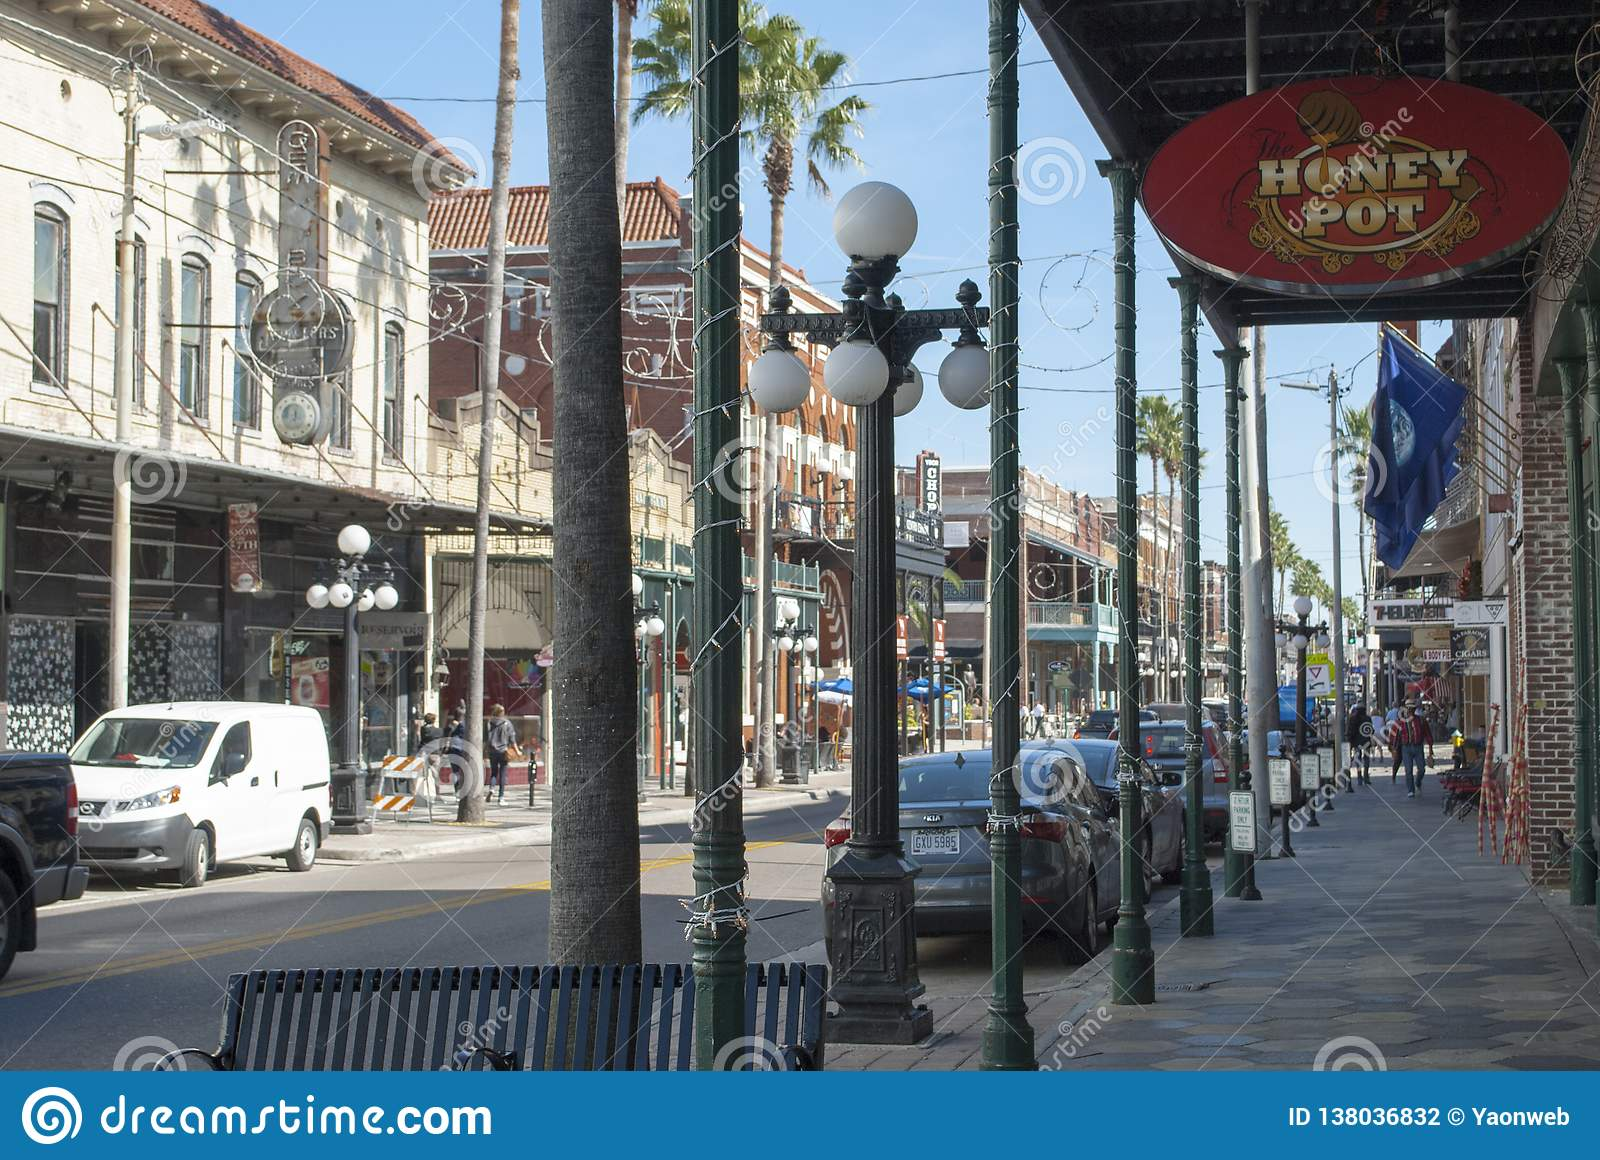 Tampa Ybor City Famous 7th Street With Shops Restaurants